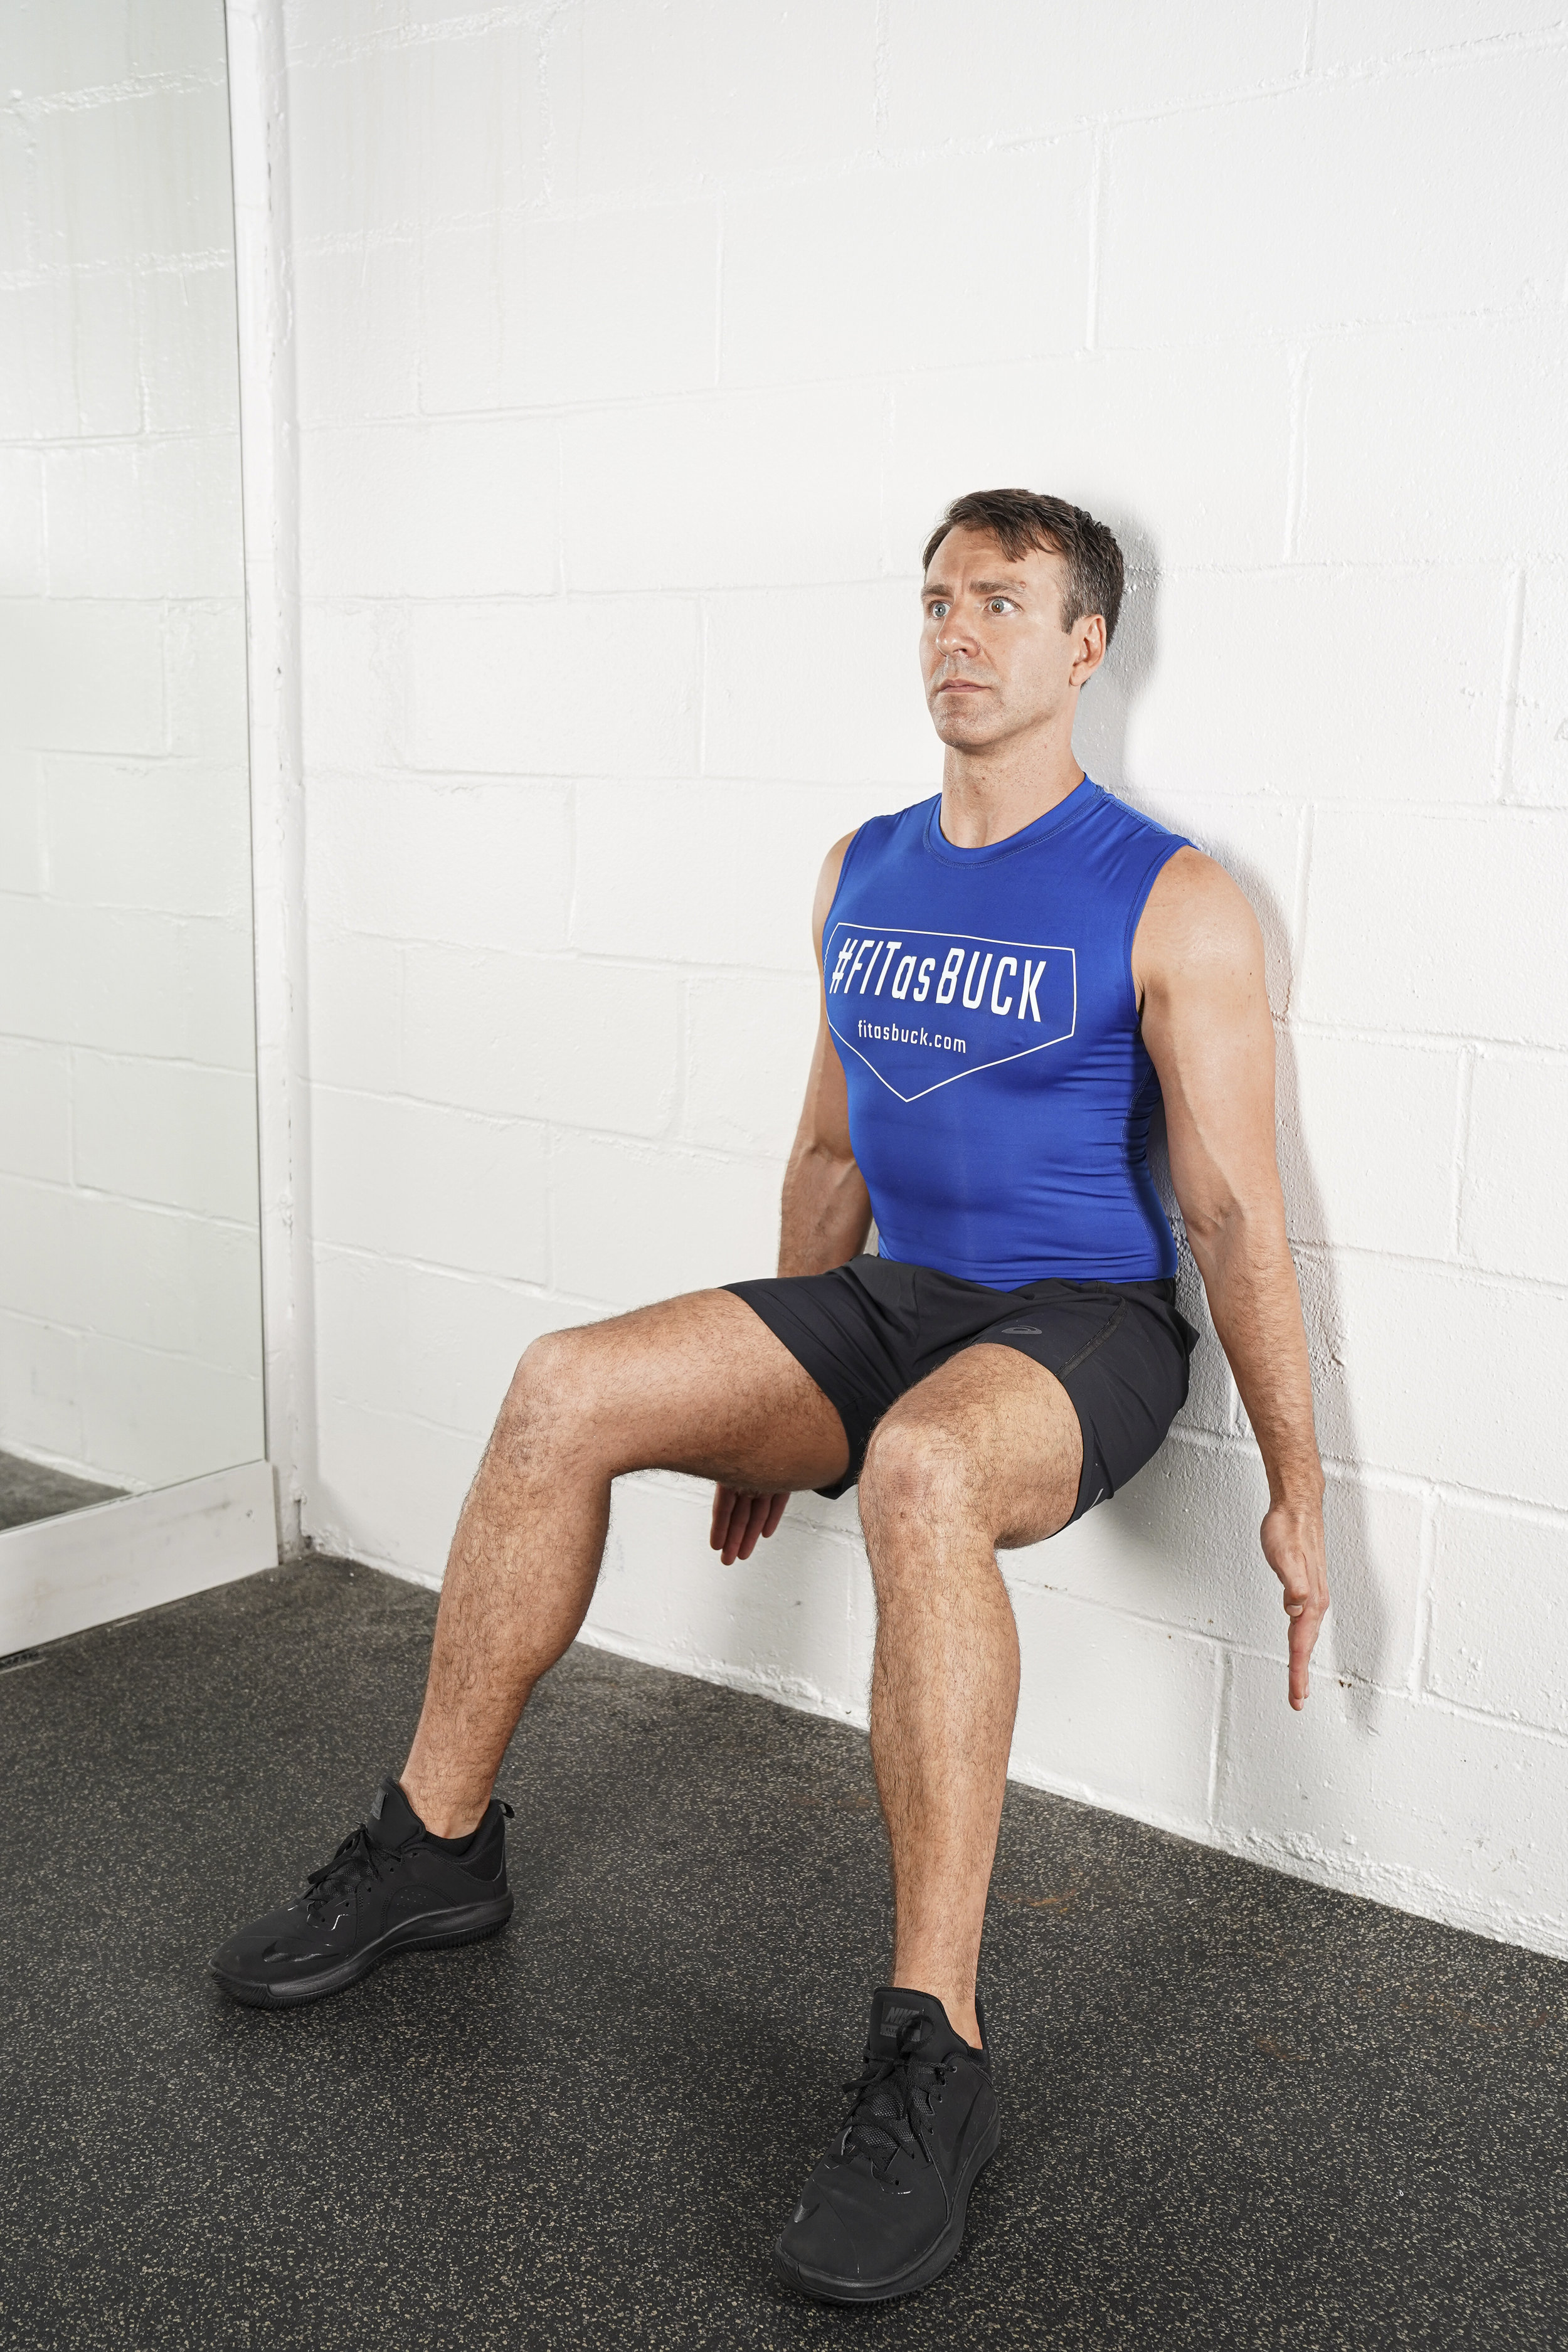 Wall Squat - - DURATION: 45 seconds